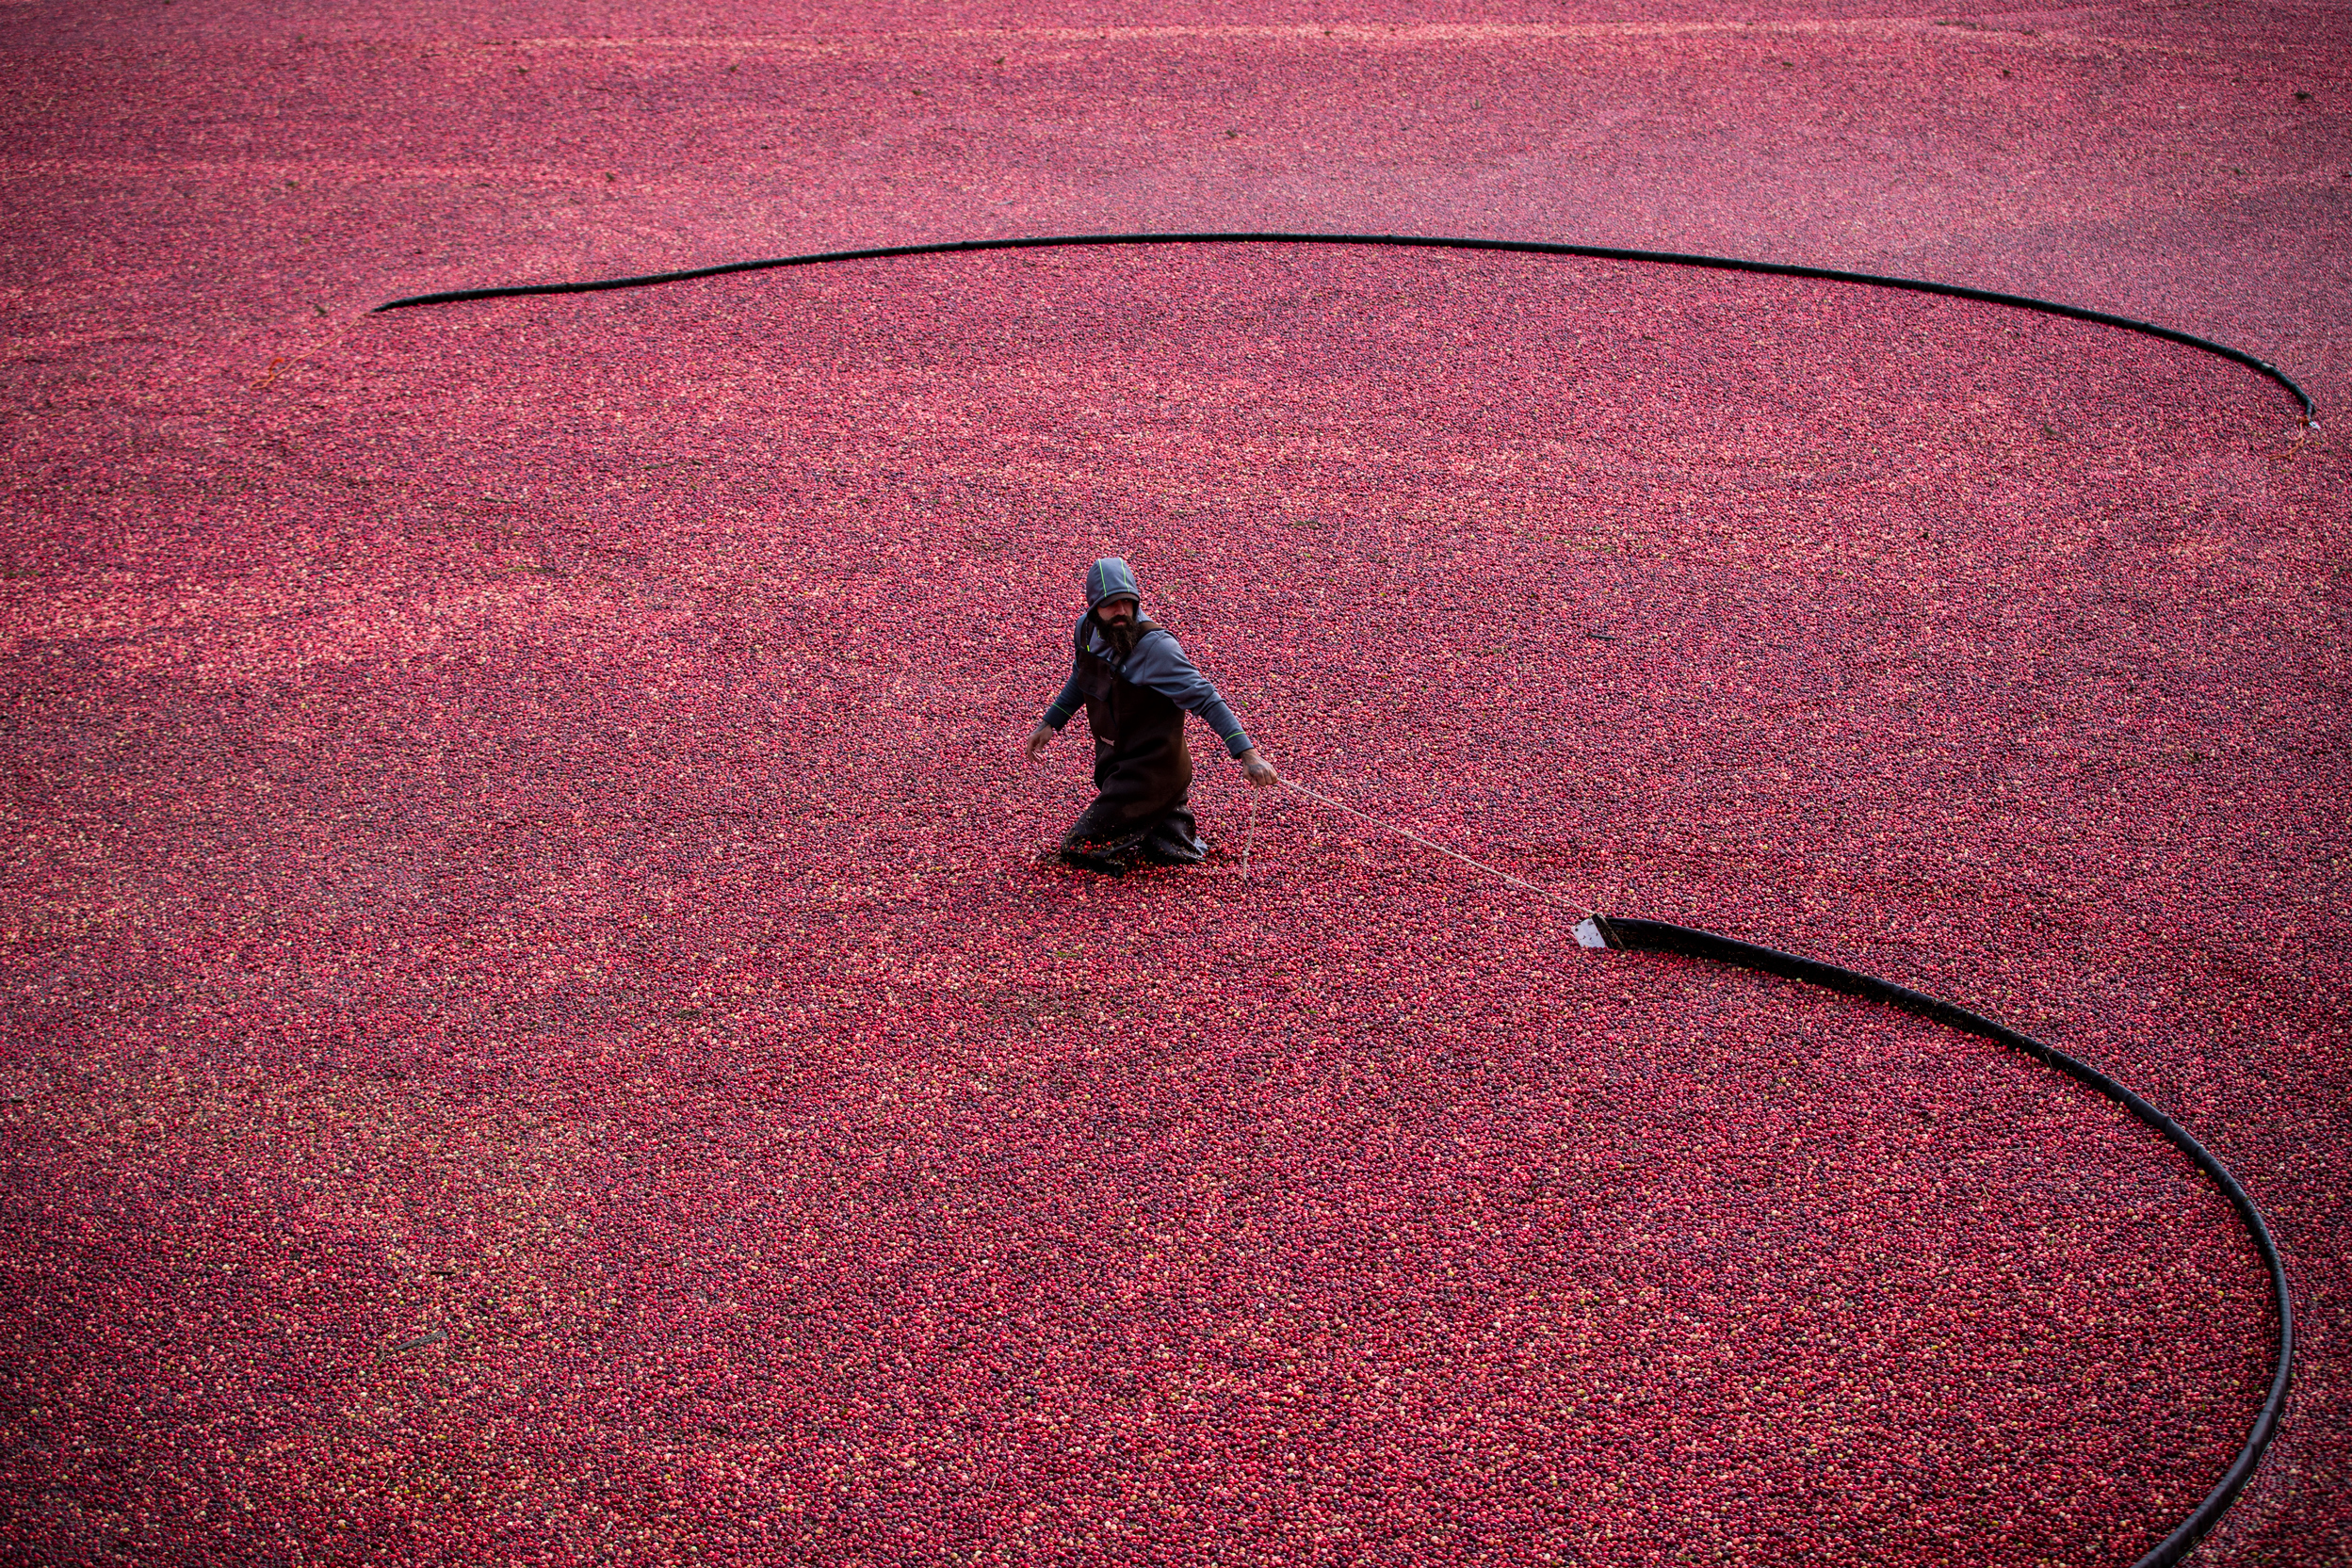 Workers use 'beaters' to loosen cranberries causing them to float at Coastal Cranberries Co., in Langley, B.C. on Oct. 3, 2019. (Ben Nelms/CBC)